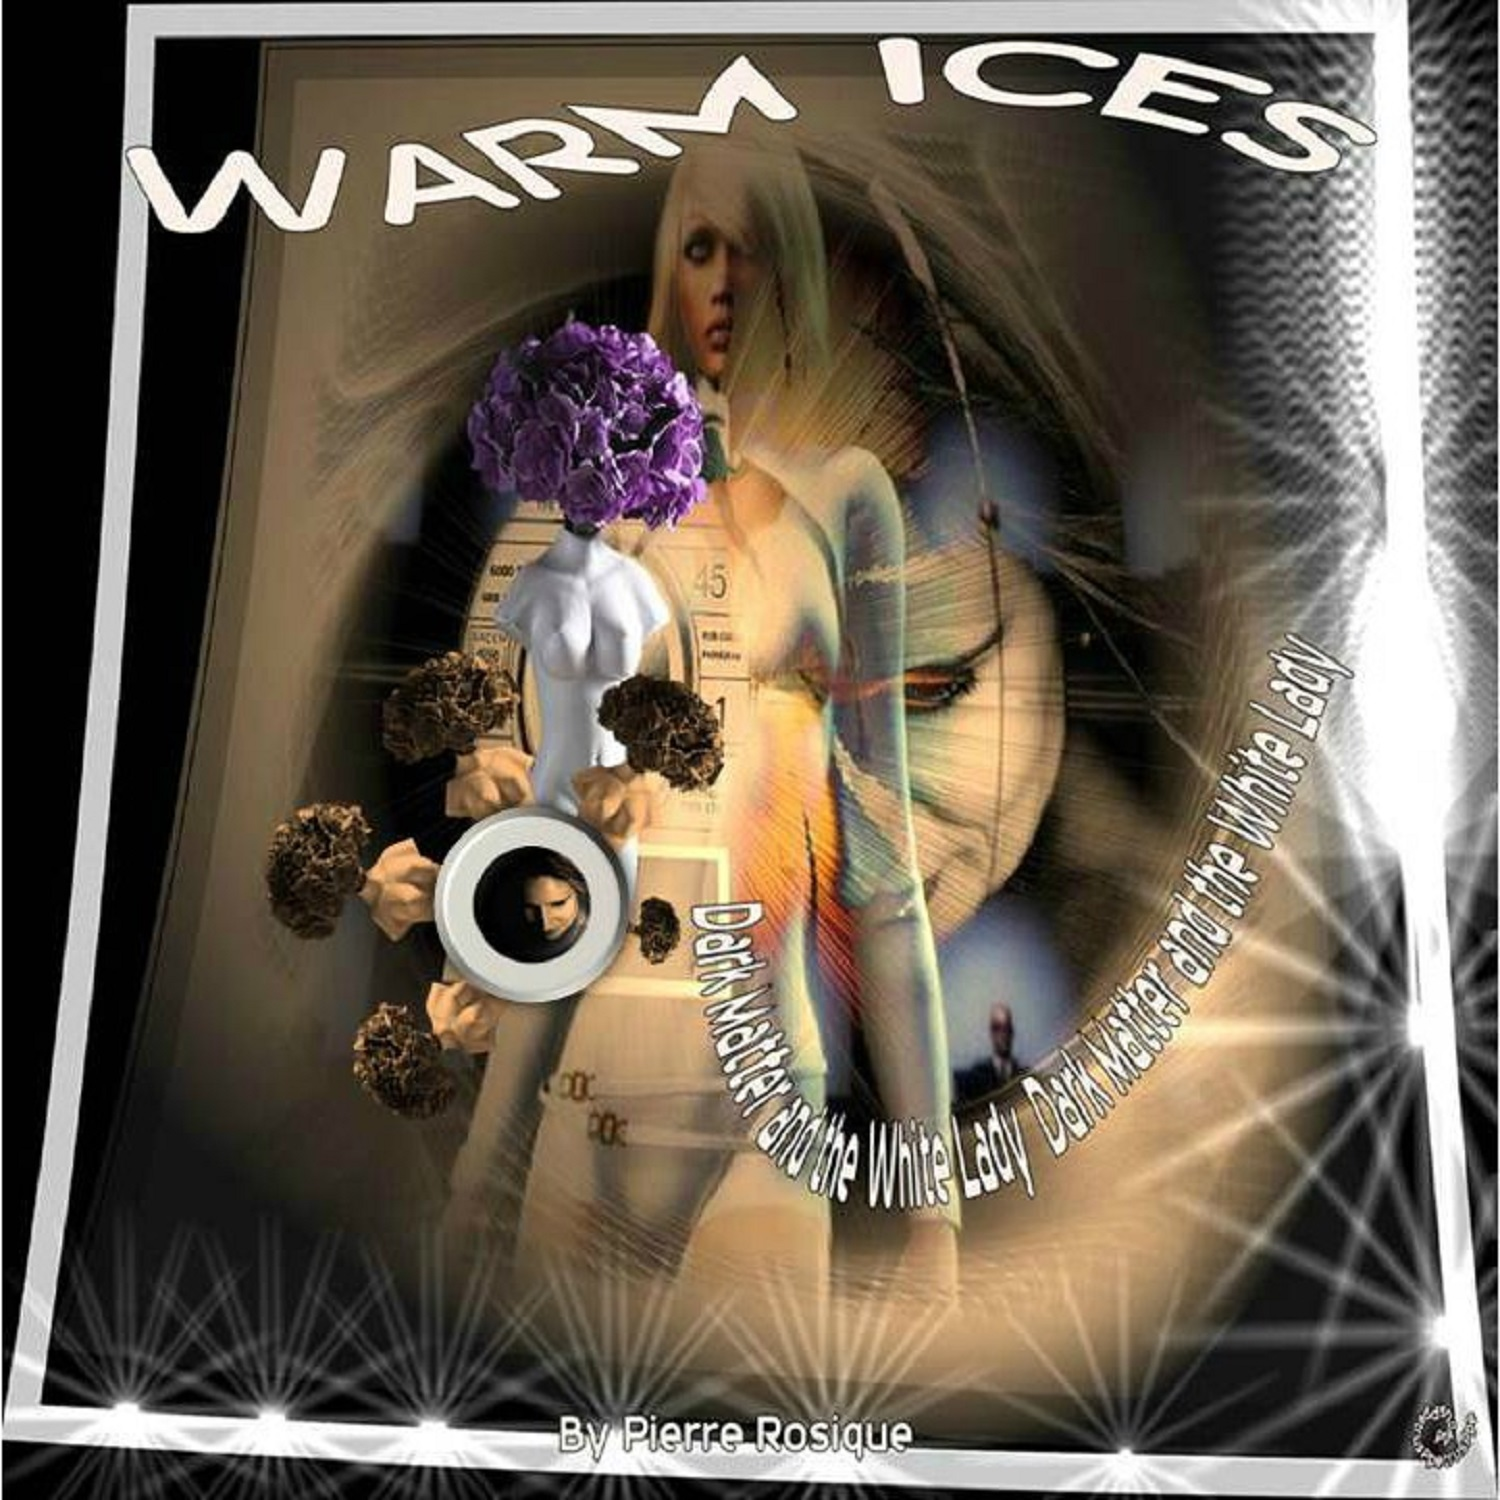 7 - Warm Ices - Black Matter and the White Lady.jpg